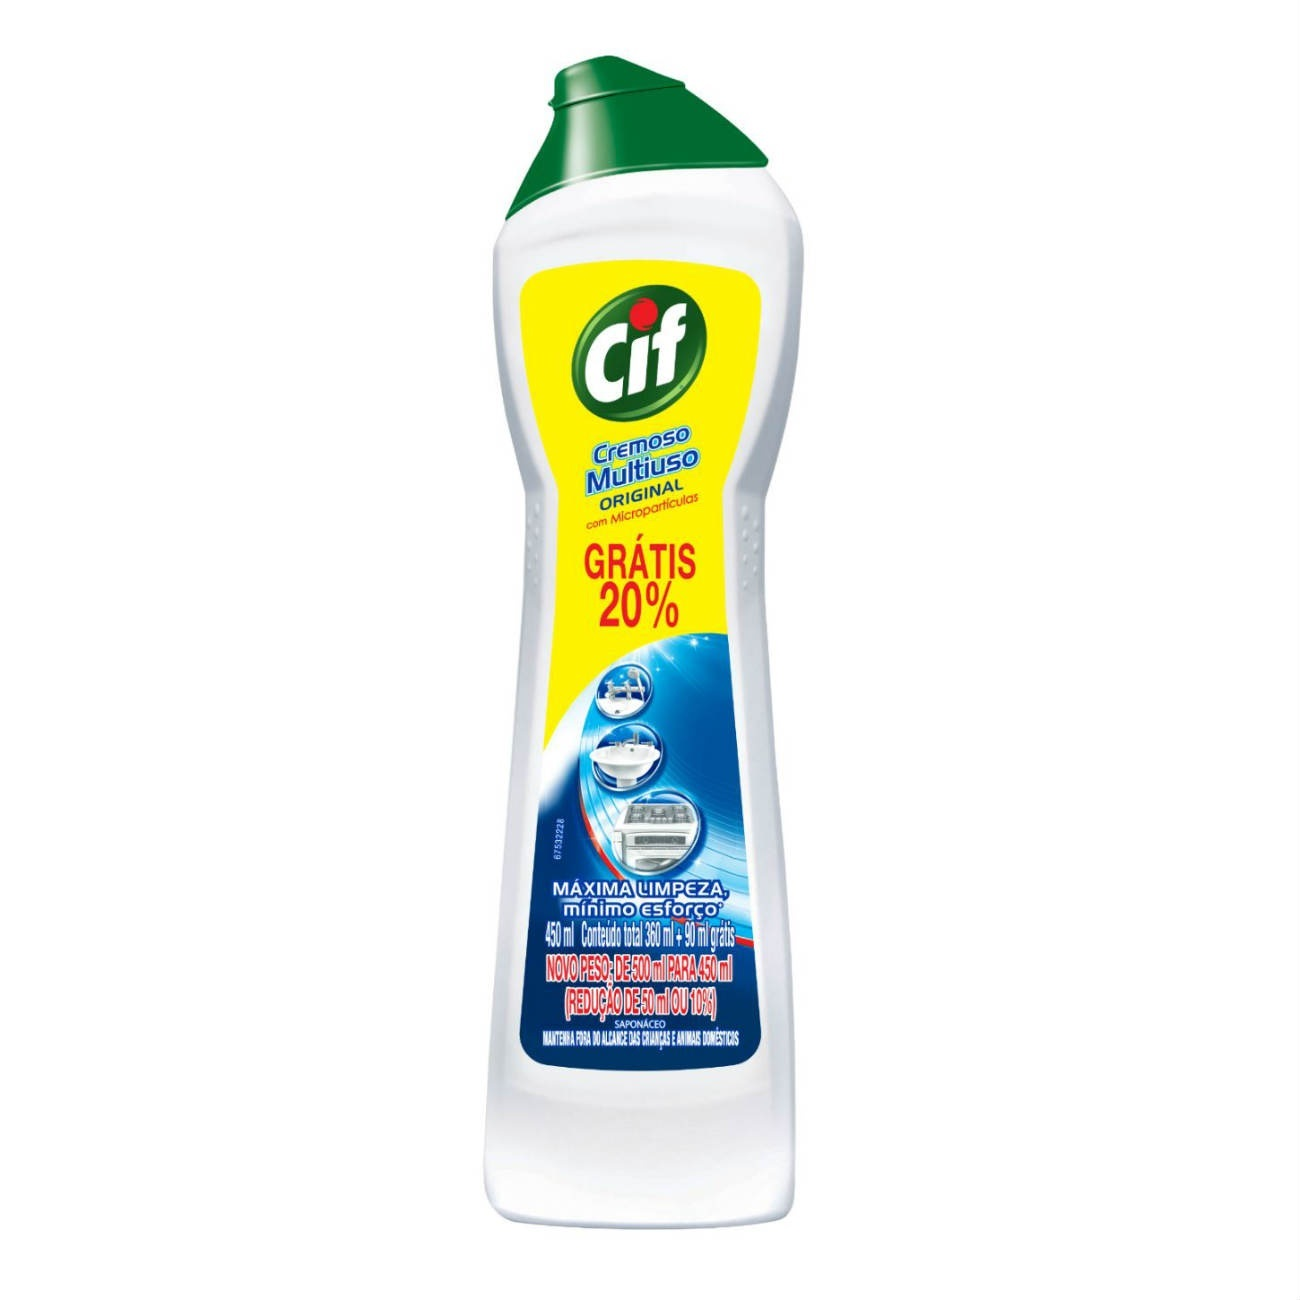 Oferta Limpador CIF Cremoso Multiuso Leve 450ml Pague 360ml 20%OFF